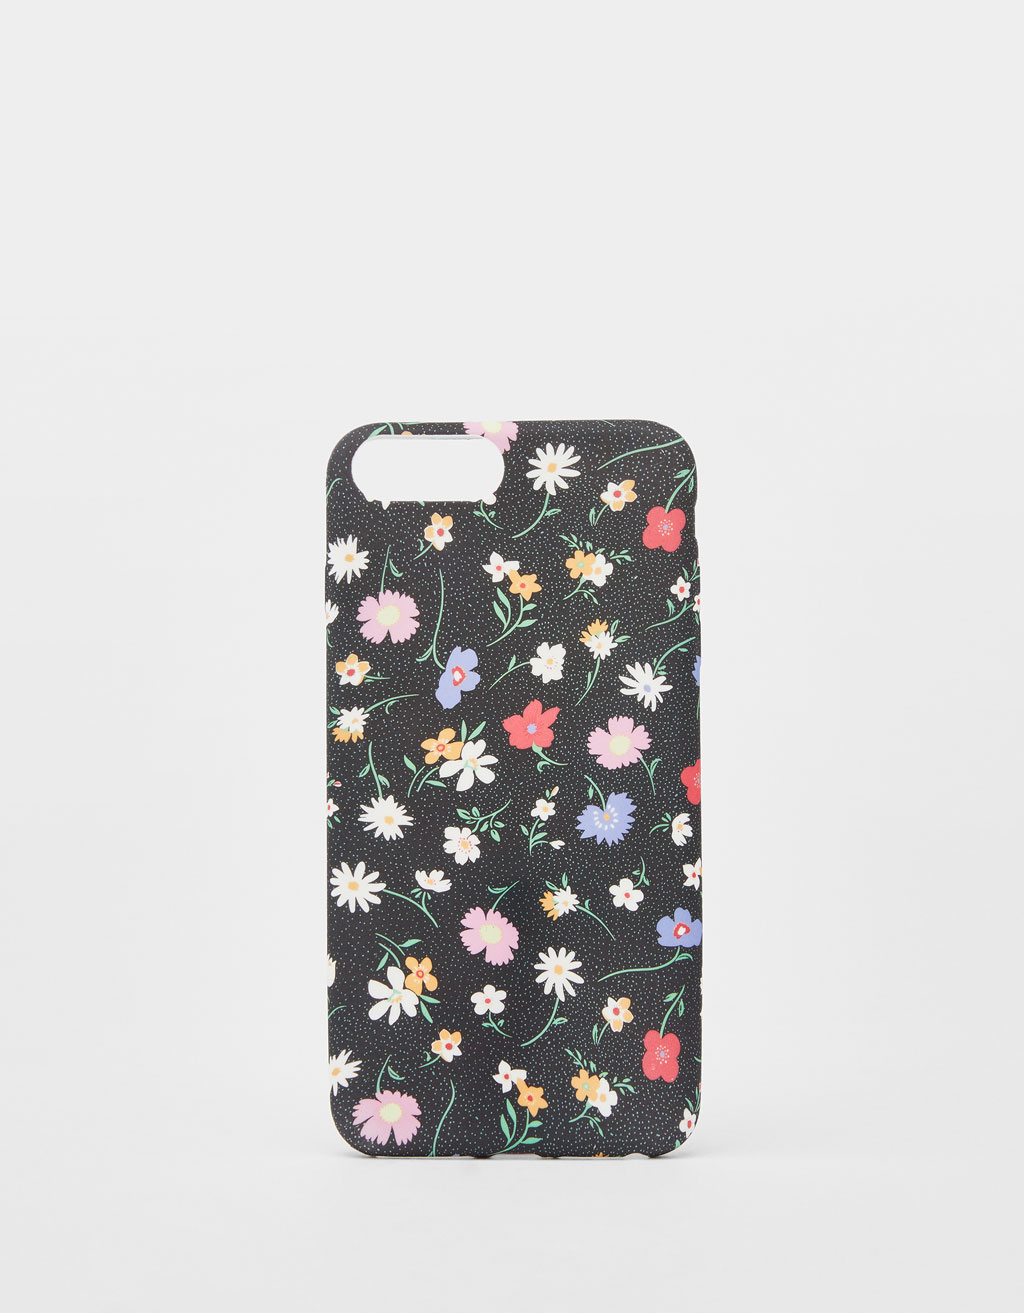 Mobilcover med blomsterprint til iPhone 6 plus / 7 plus / 8 plus